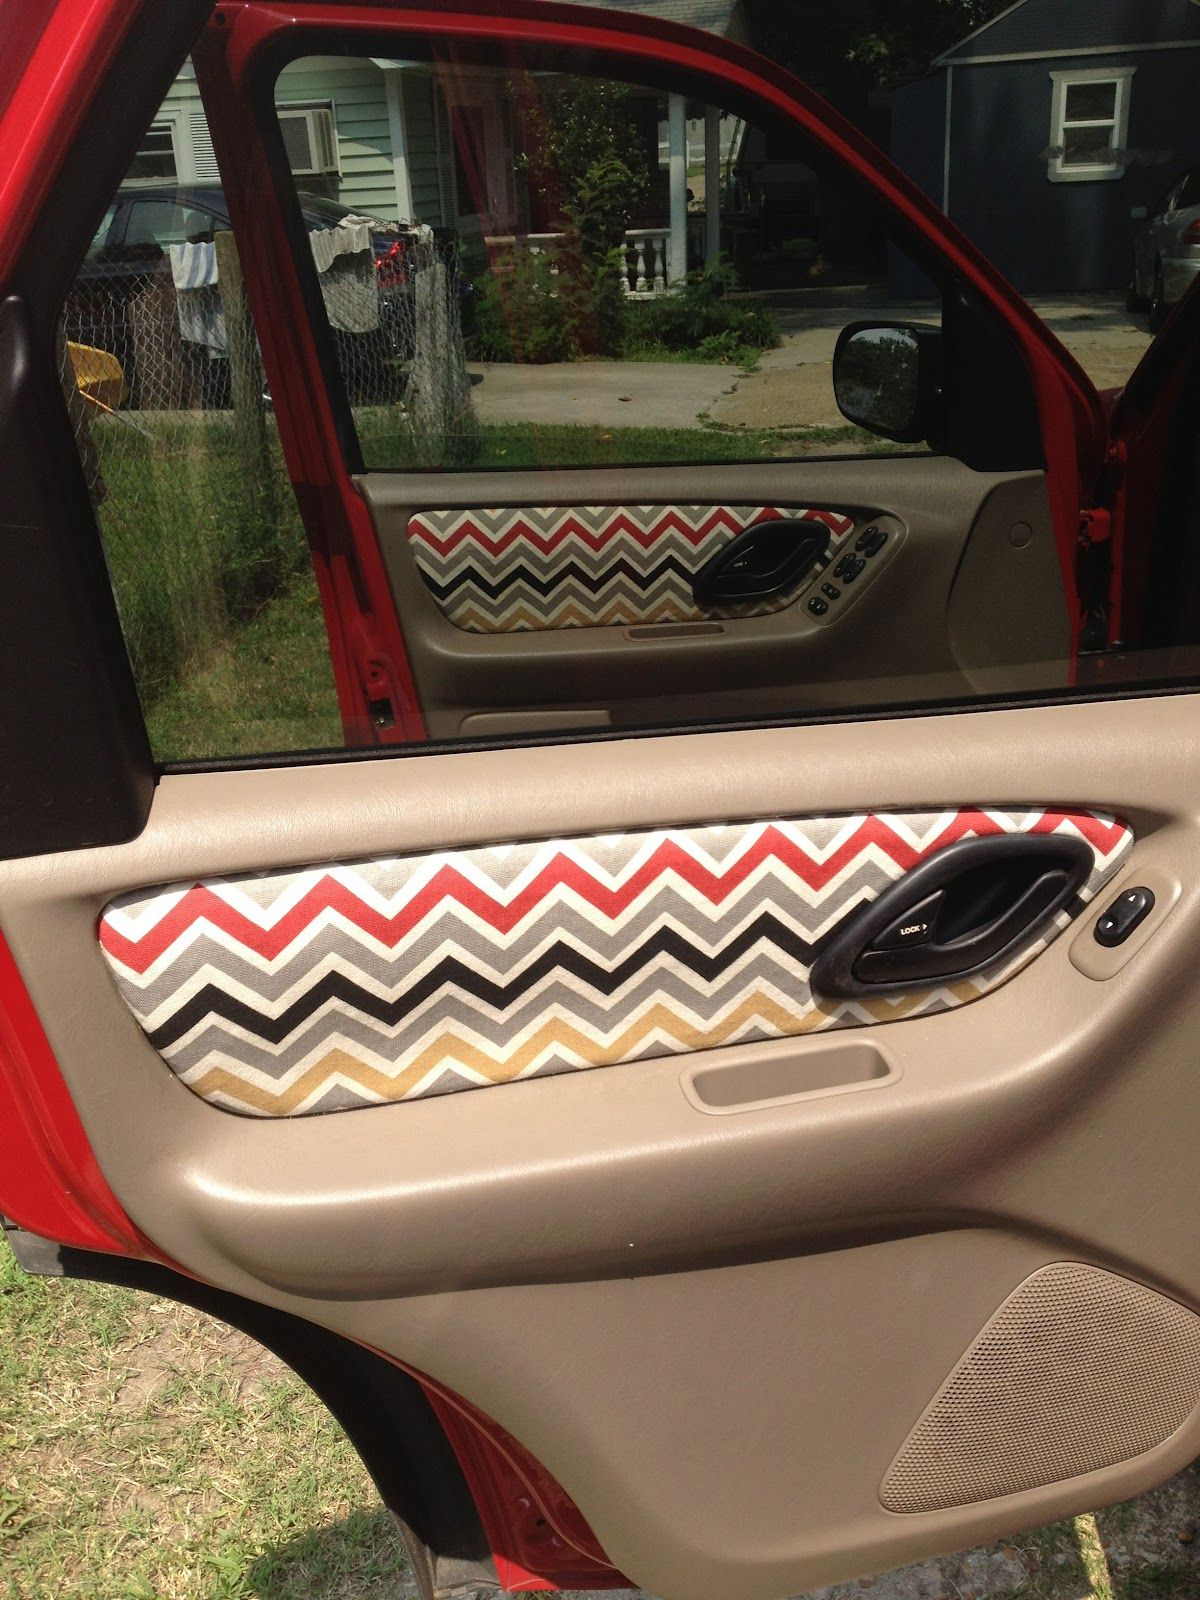 Diy Car Interior Design: DIY Fabric Covered Car Interior. Such A Cute Idea, But